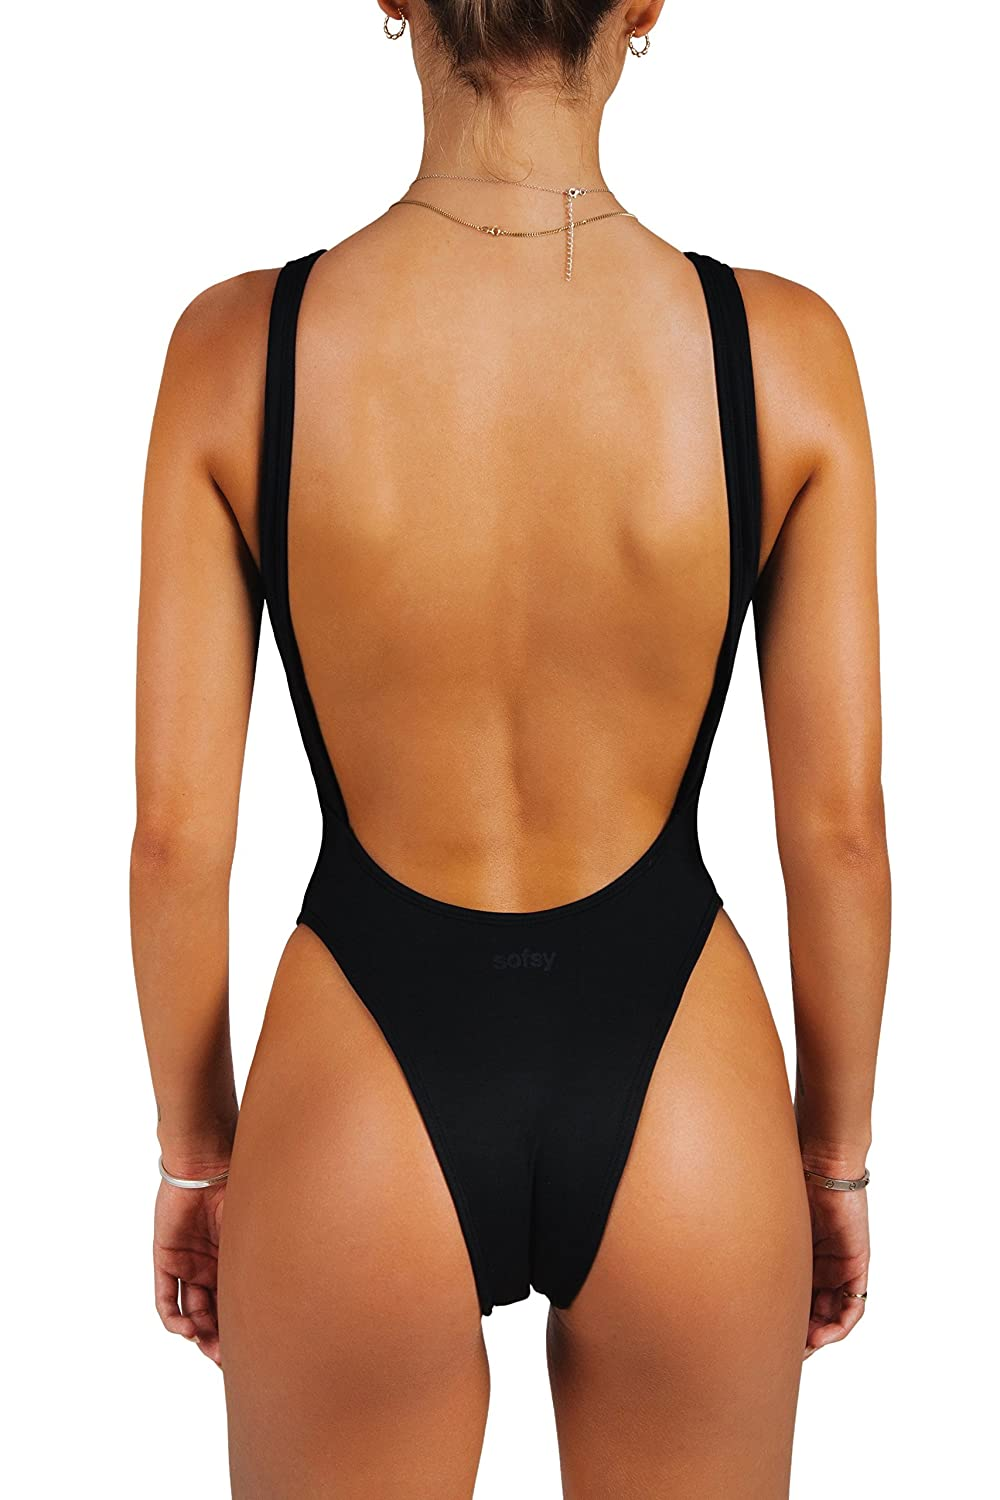 efadaa15899 sofsy One Piece Swimsuit for Women Bathing Suit High Cut Low Back Sexy Swimwear  Retro Backless 80s 90s at Amazon Women's Clothing store: